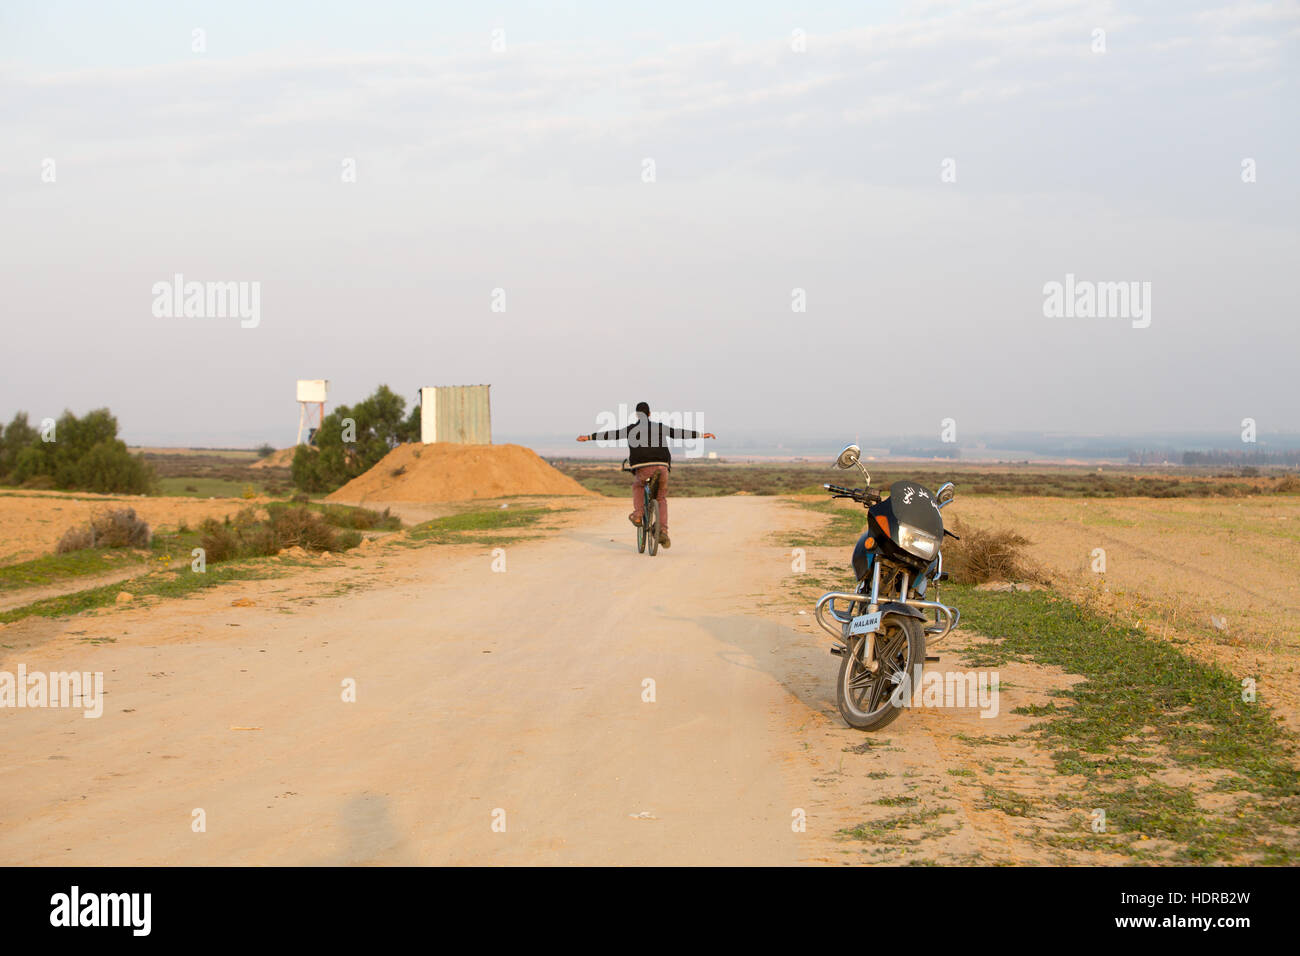 A young man cycles close to the Israeli border with Gaza, during a protest. - Stock Image